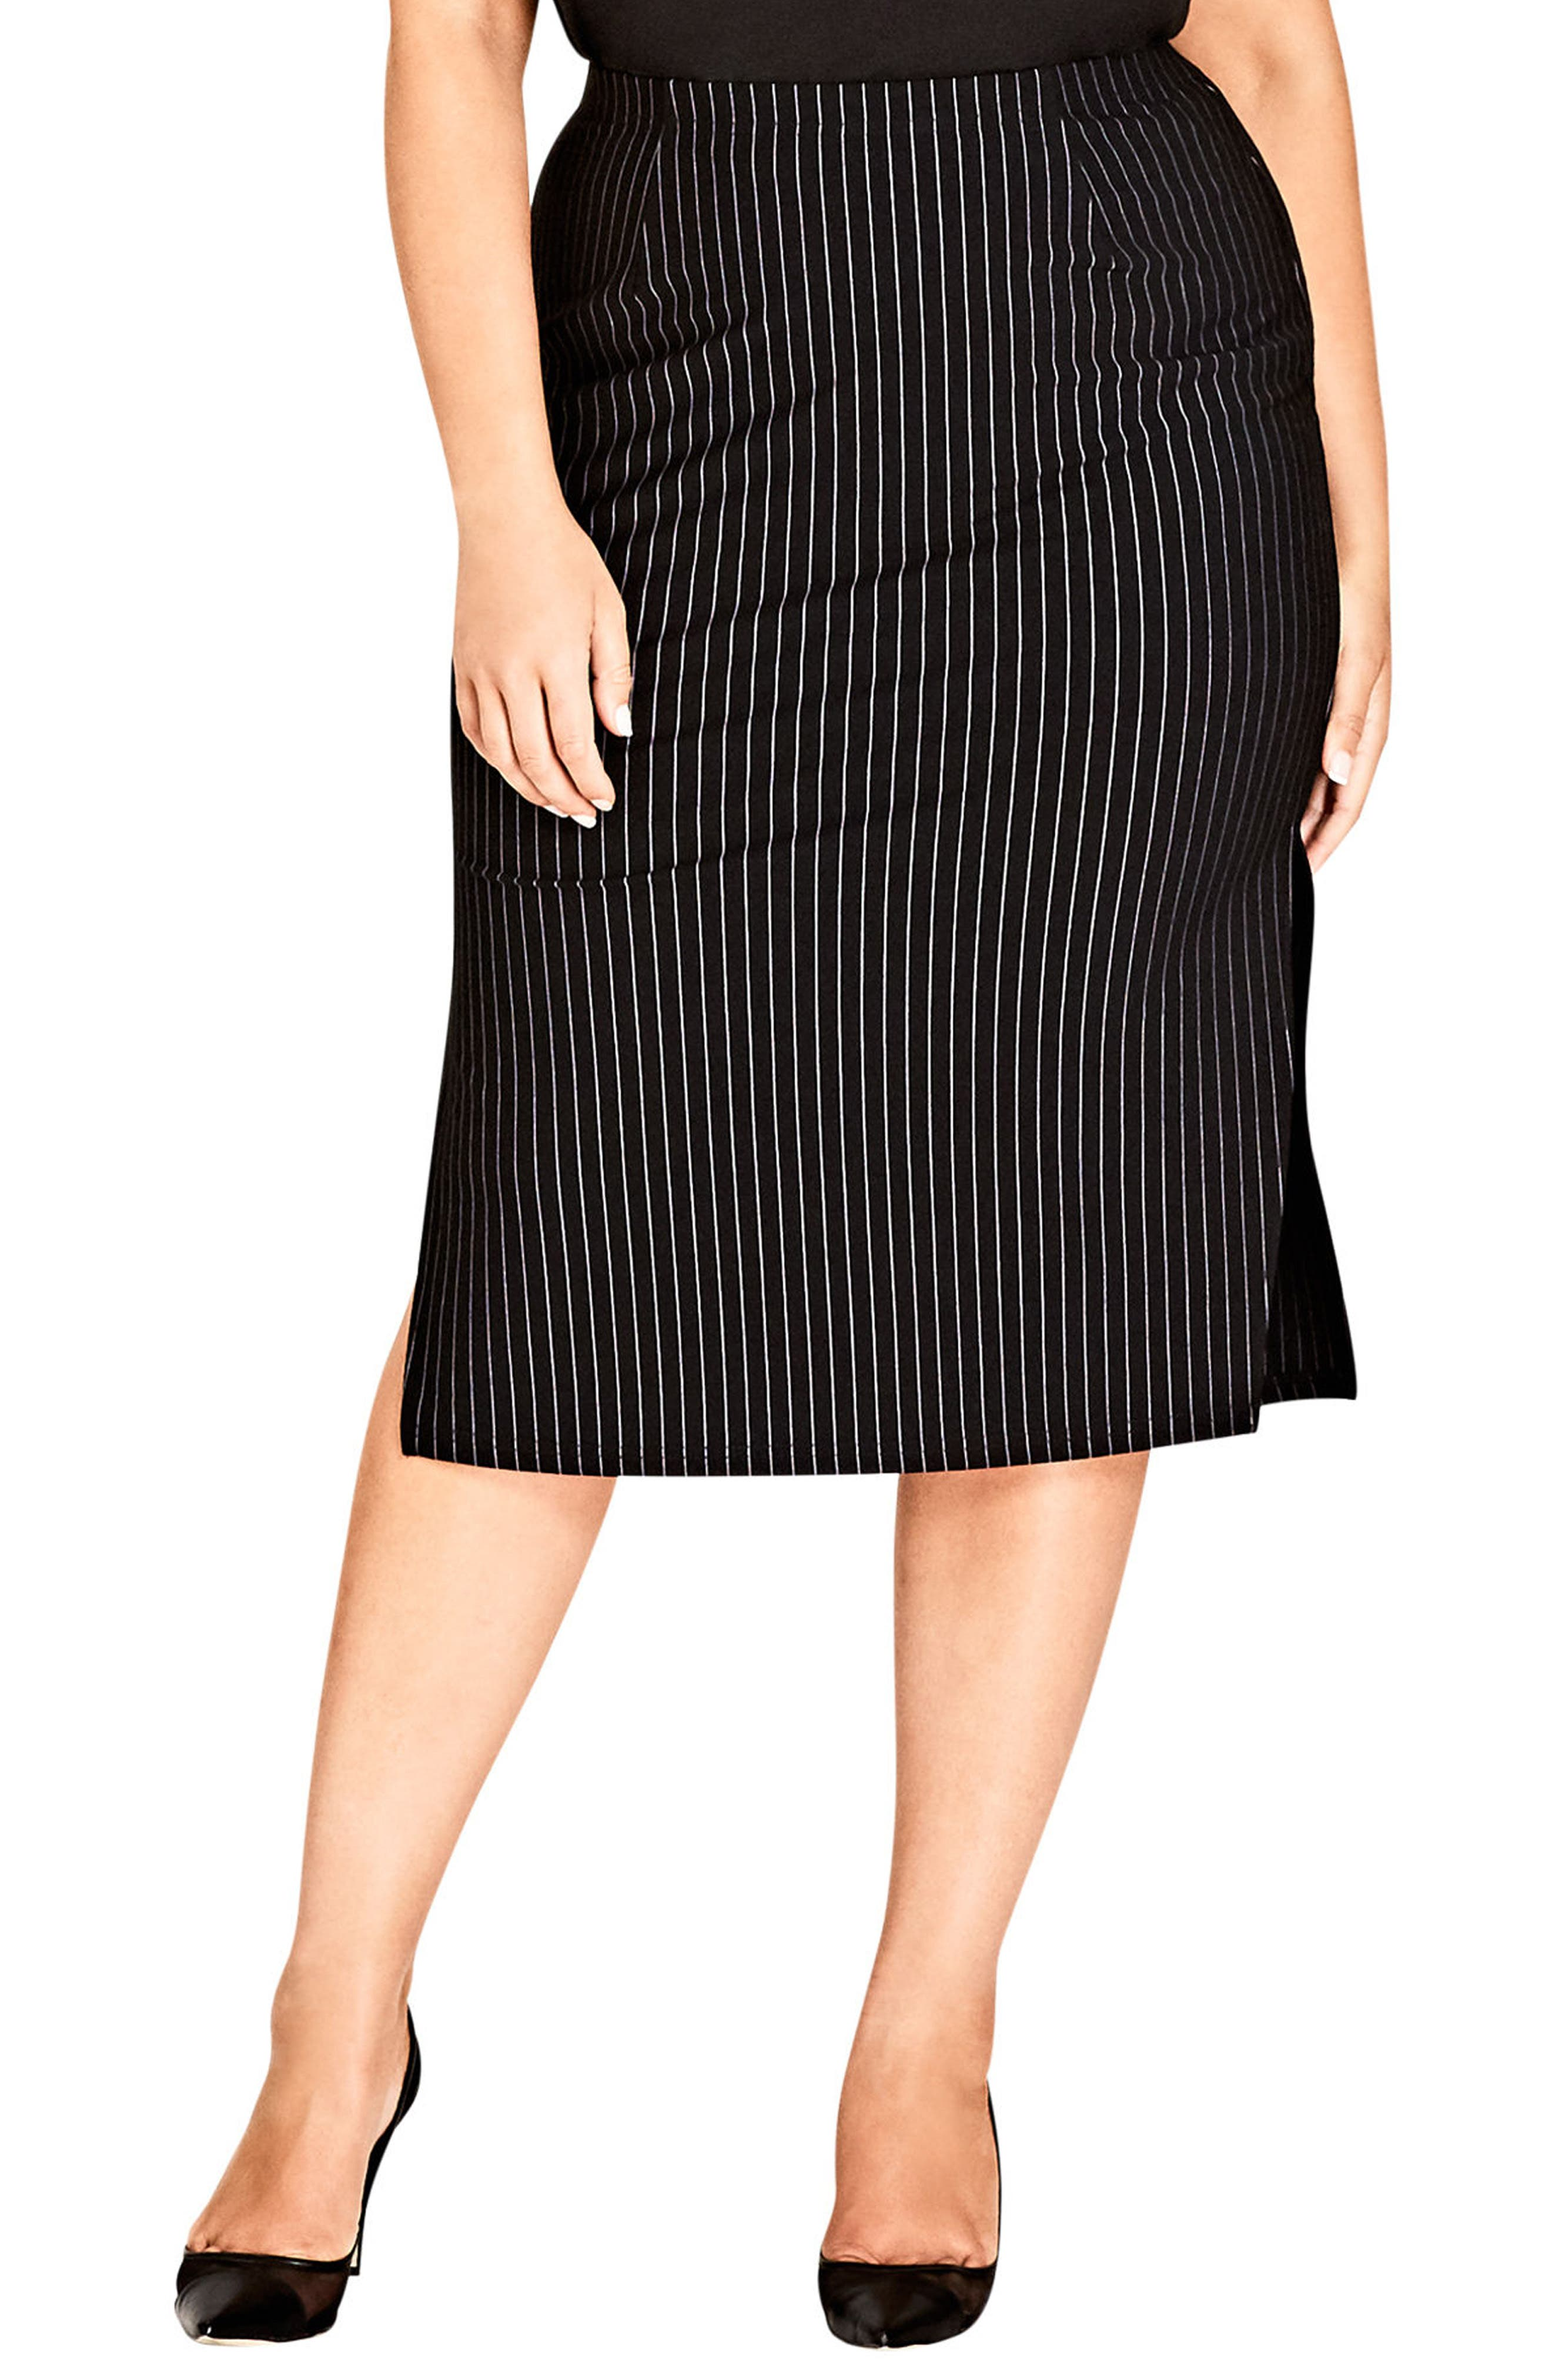 Chic City On Point Pencil skirt,                         Main,                         color, 001